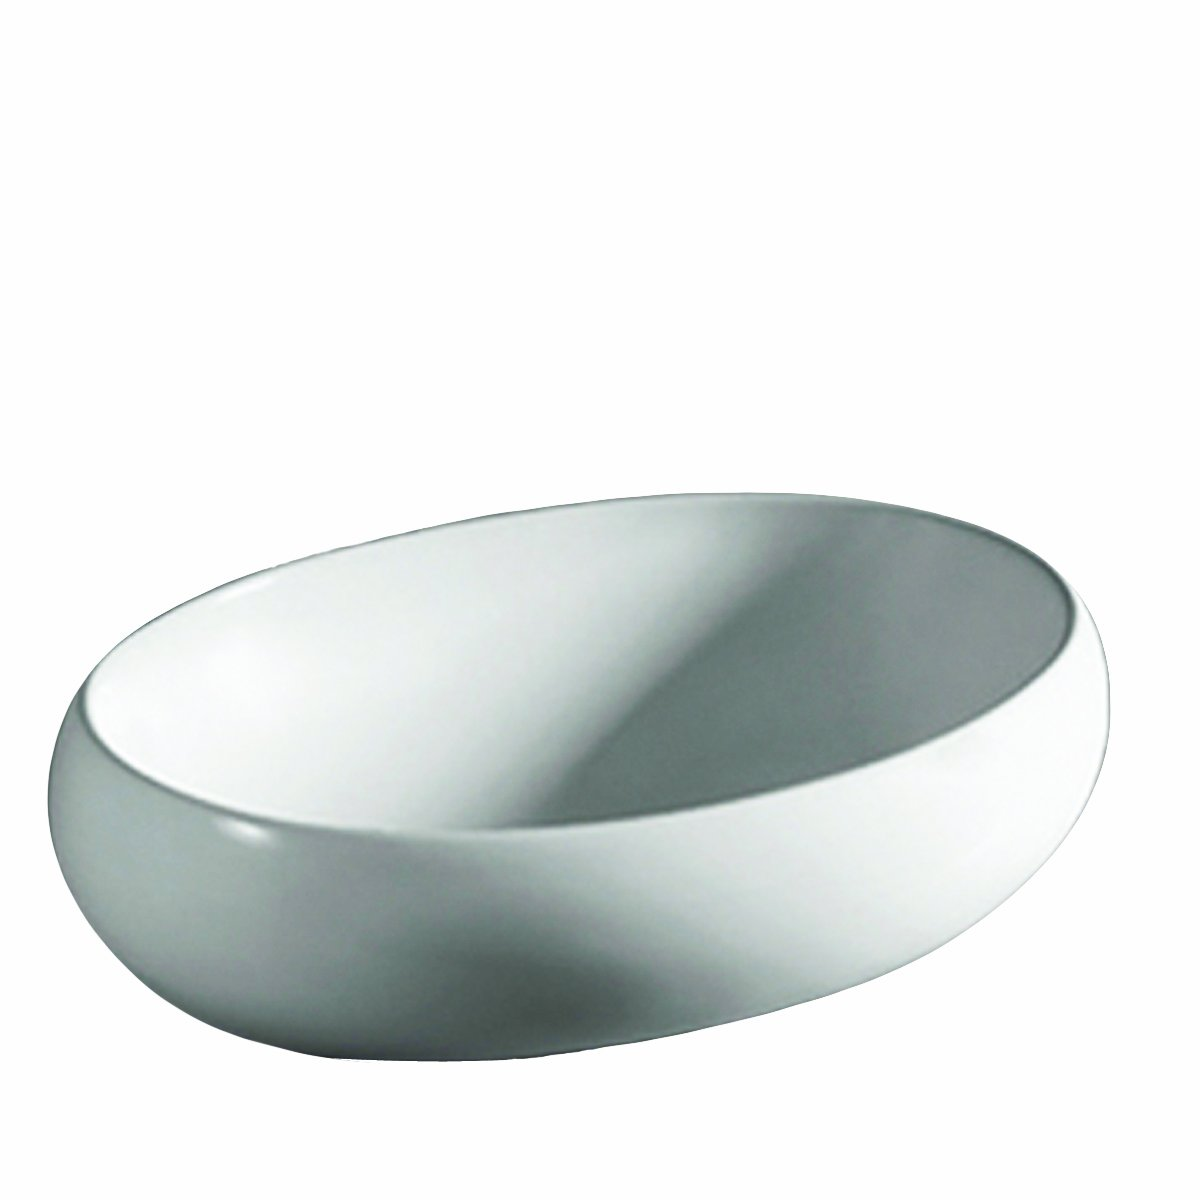 Whitehaus WHKN1091-WH Isabella 23-1 4-Inch Oval Above Counter Lavatory Basin with Center Drain and No Overflow, White